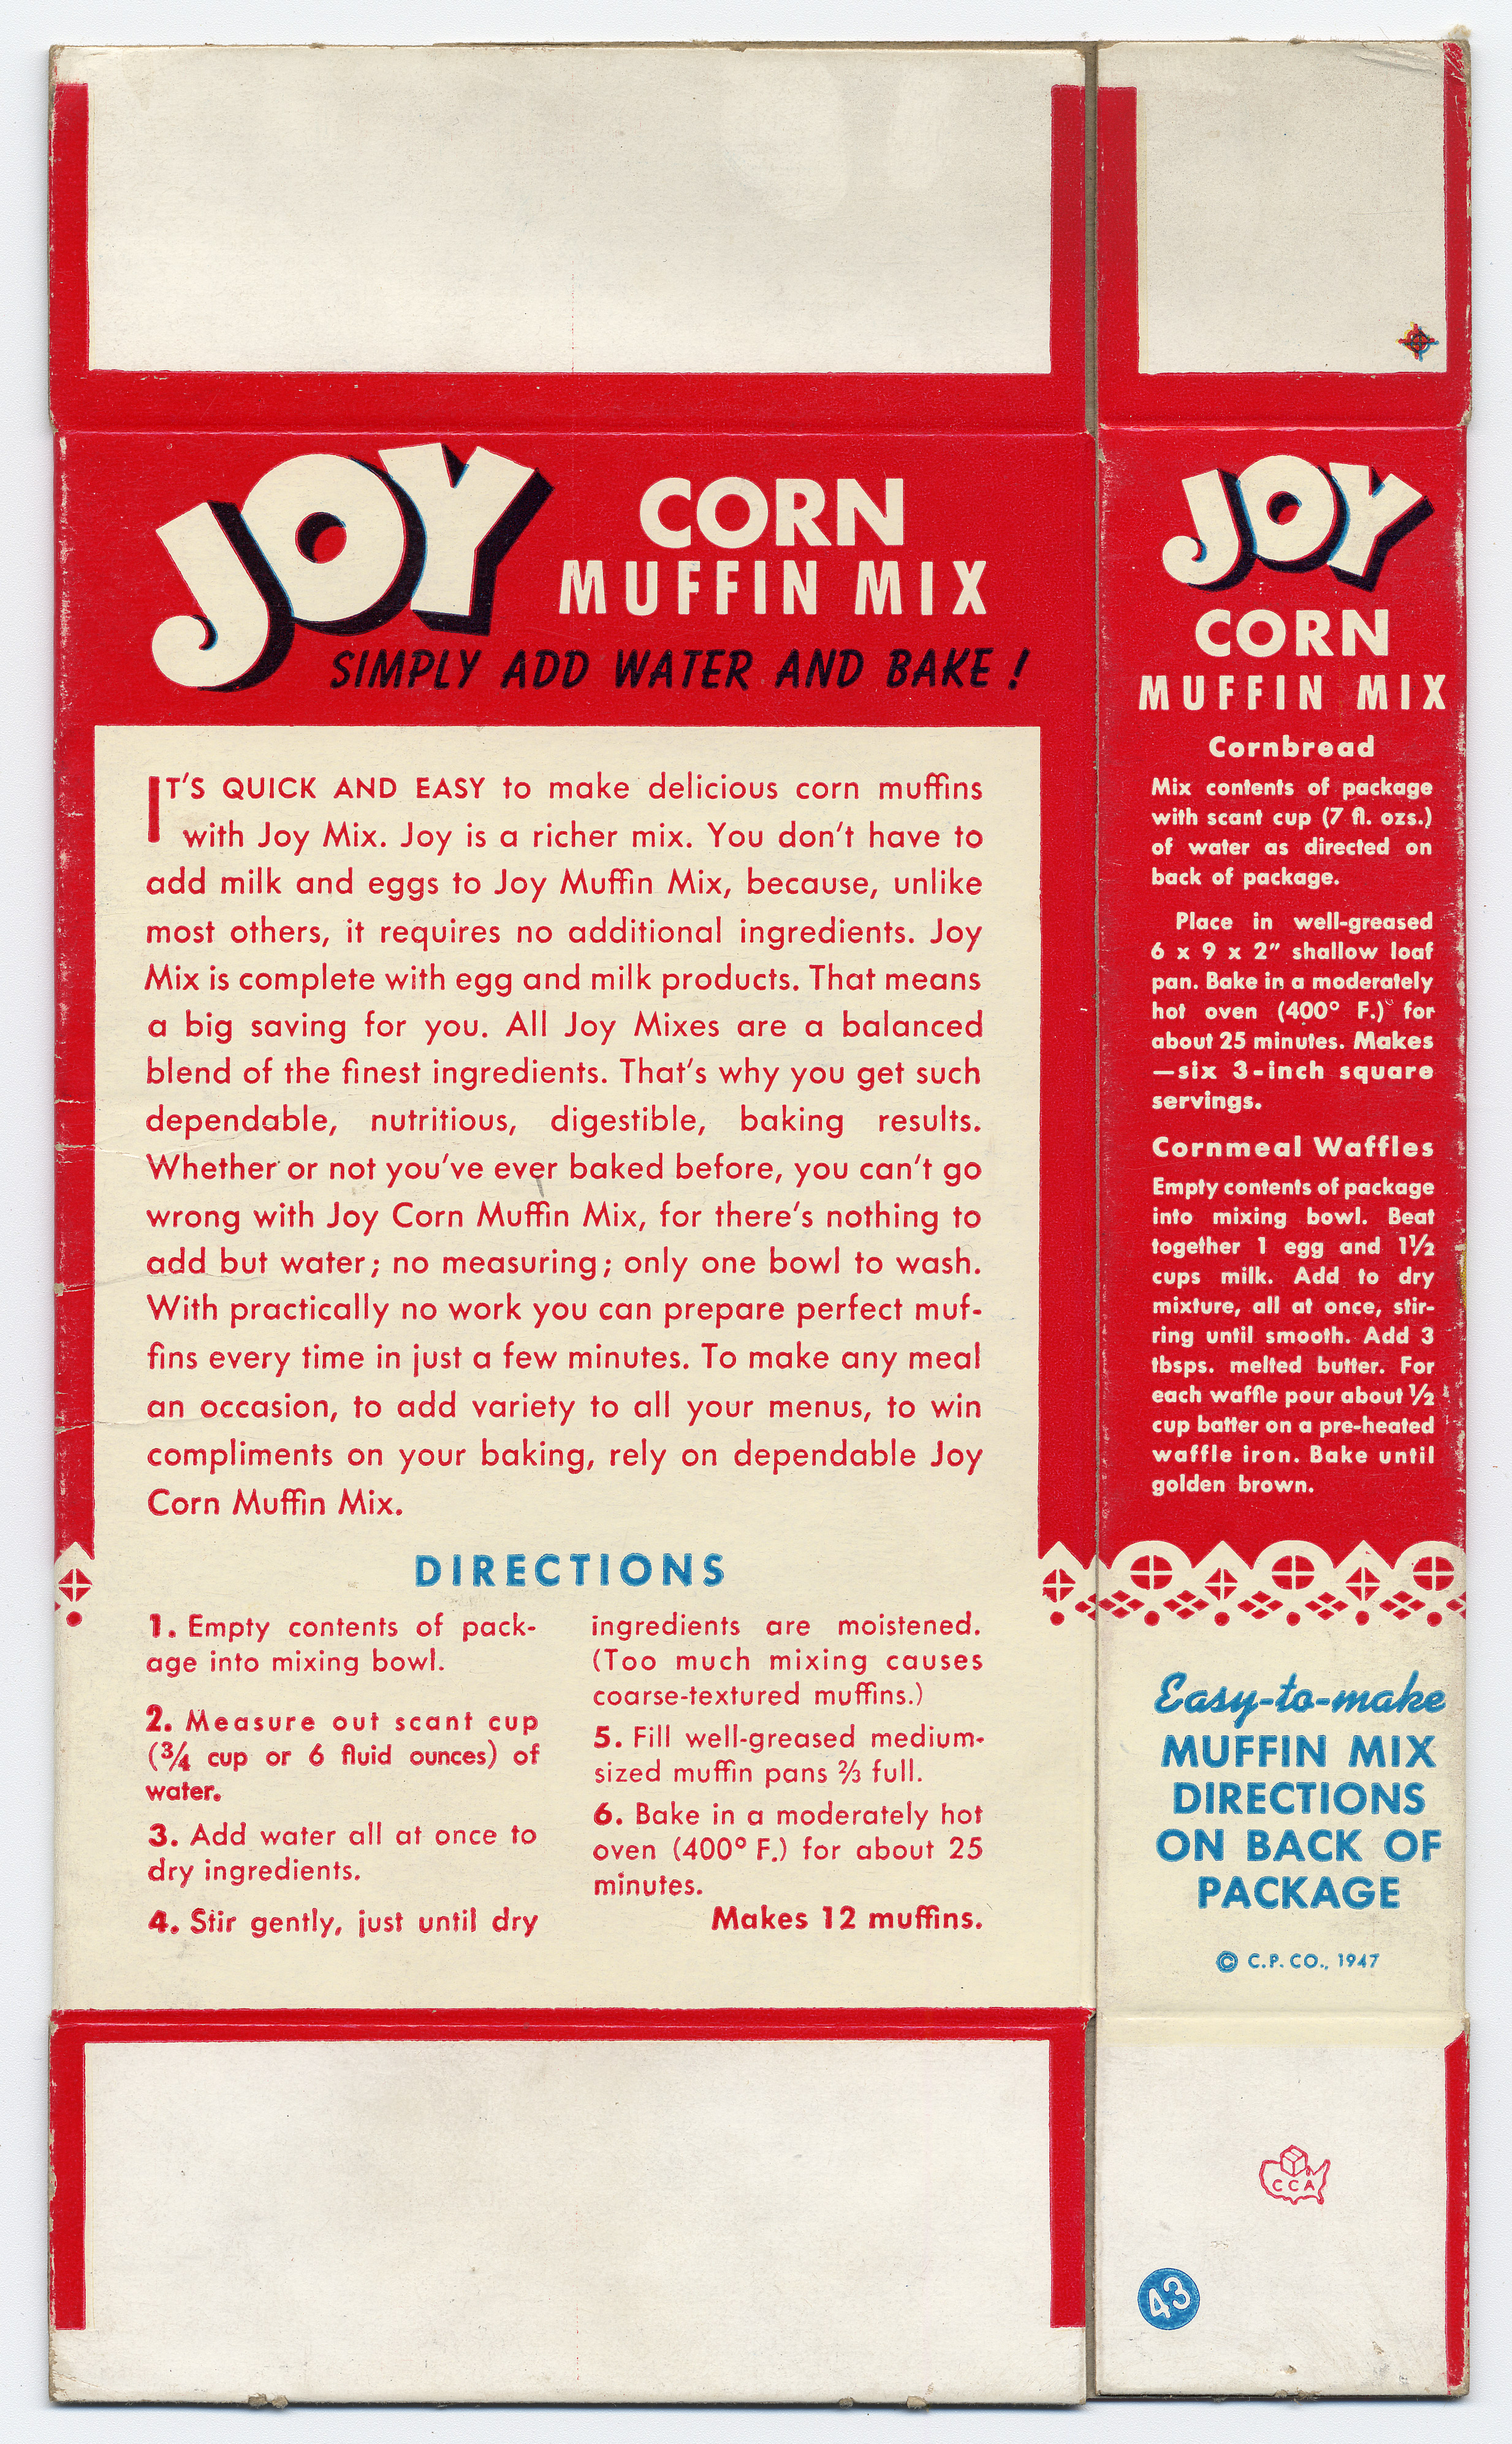 Image of back of Joy brand corn muffin mix box